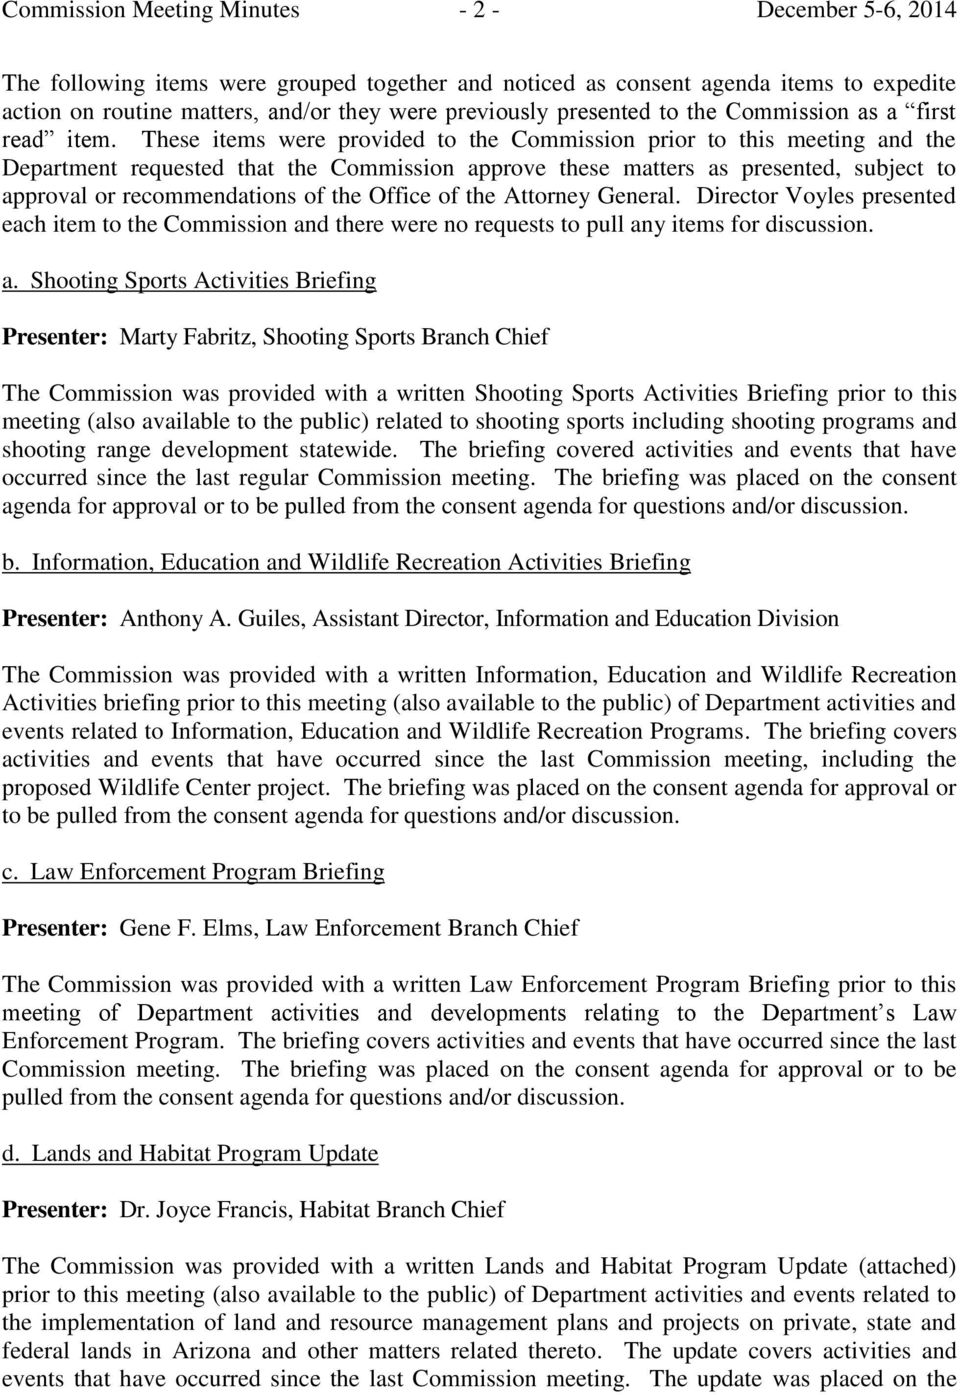 These items were provided to the Commission prior to this meeting and the Department requested that the Commission approve these matters as presented, subject to approval or recommendations of the